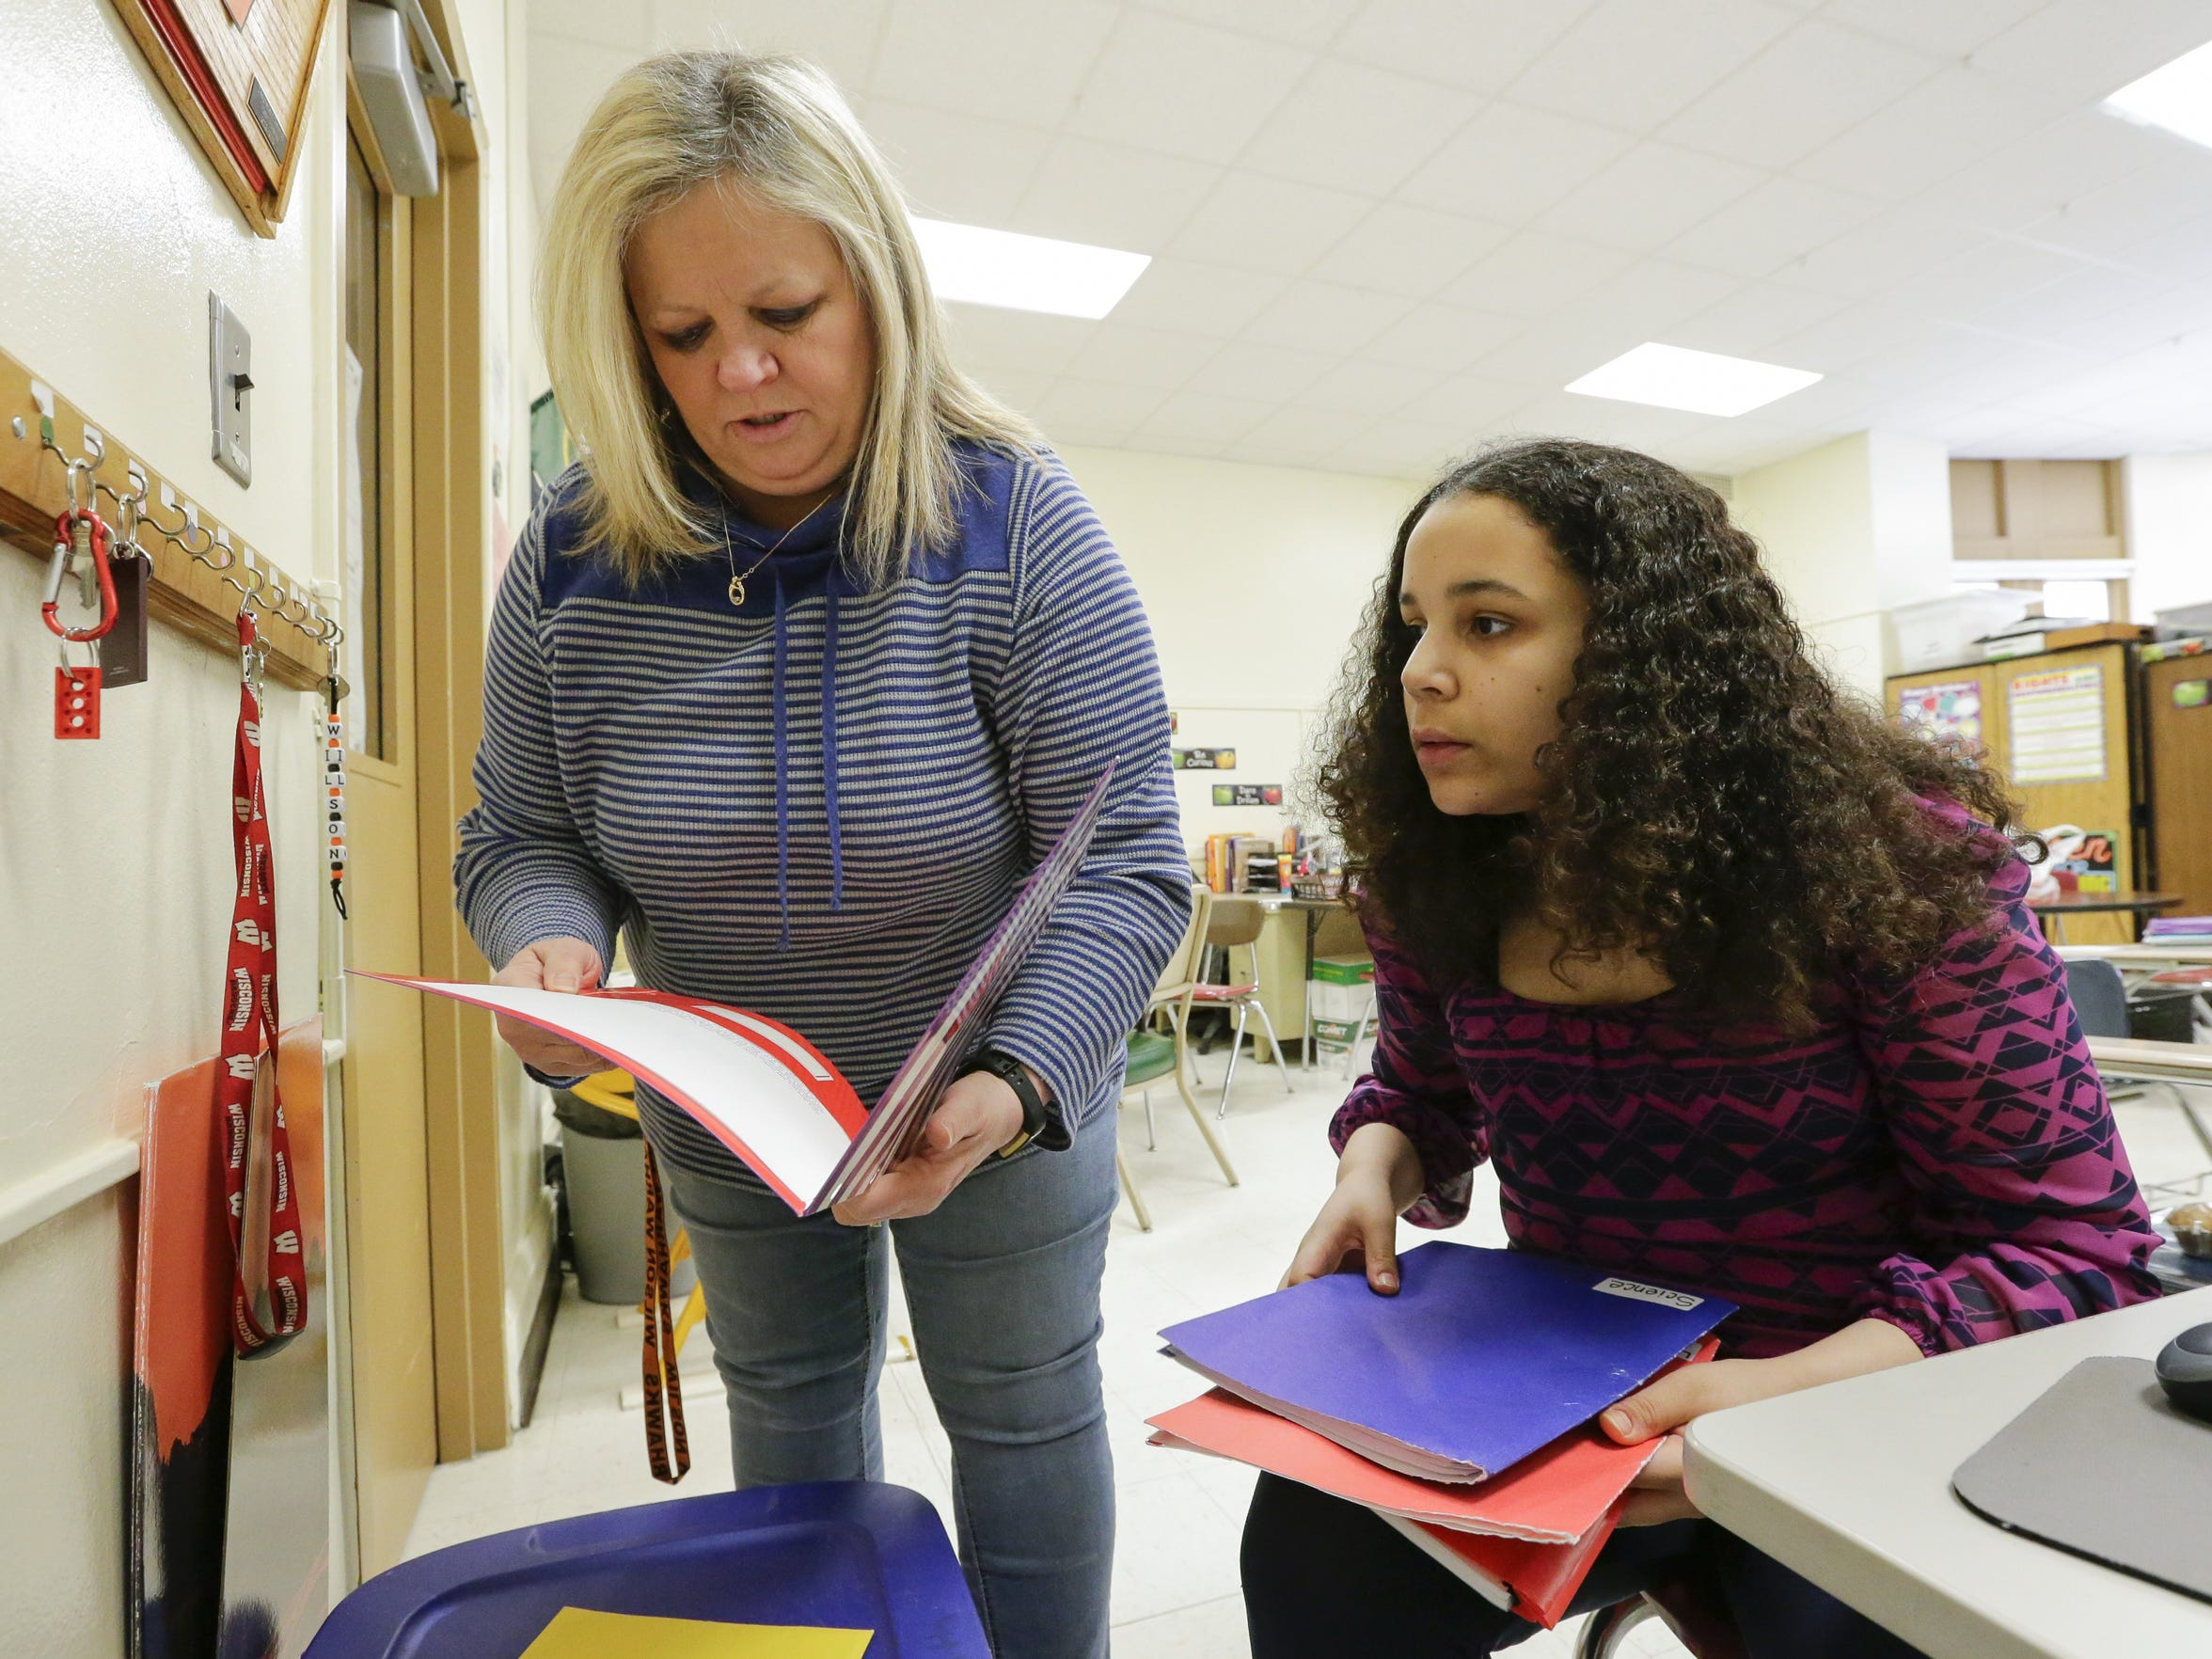 Isabella, 16, right, works with her special education